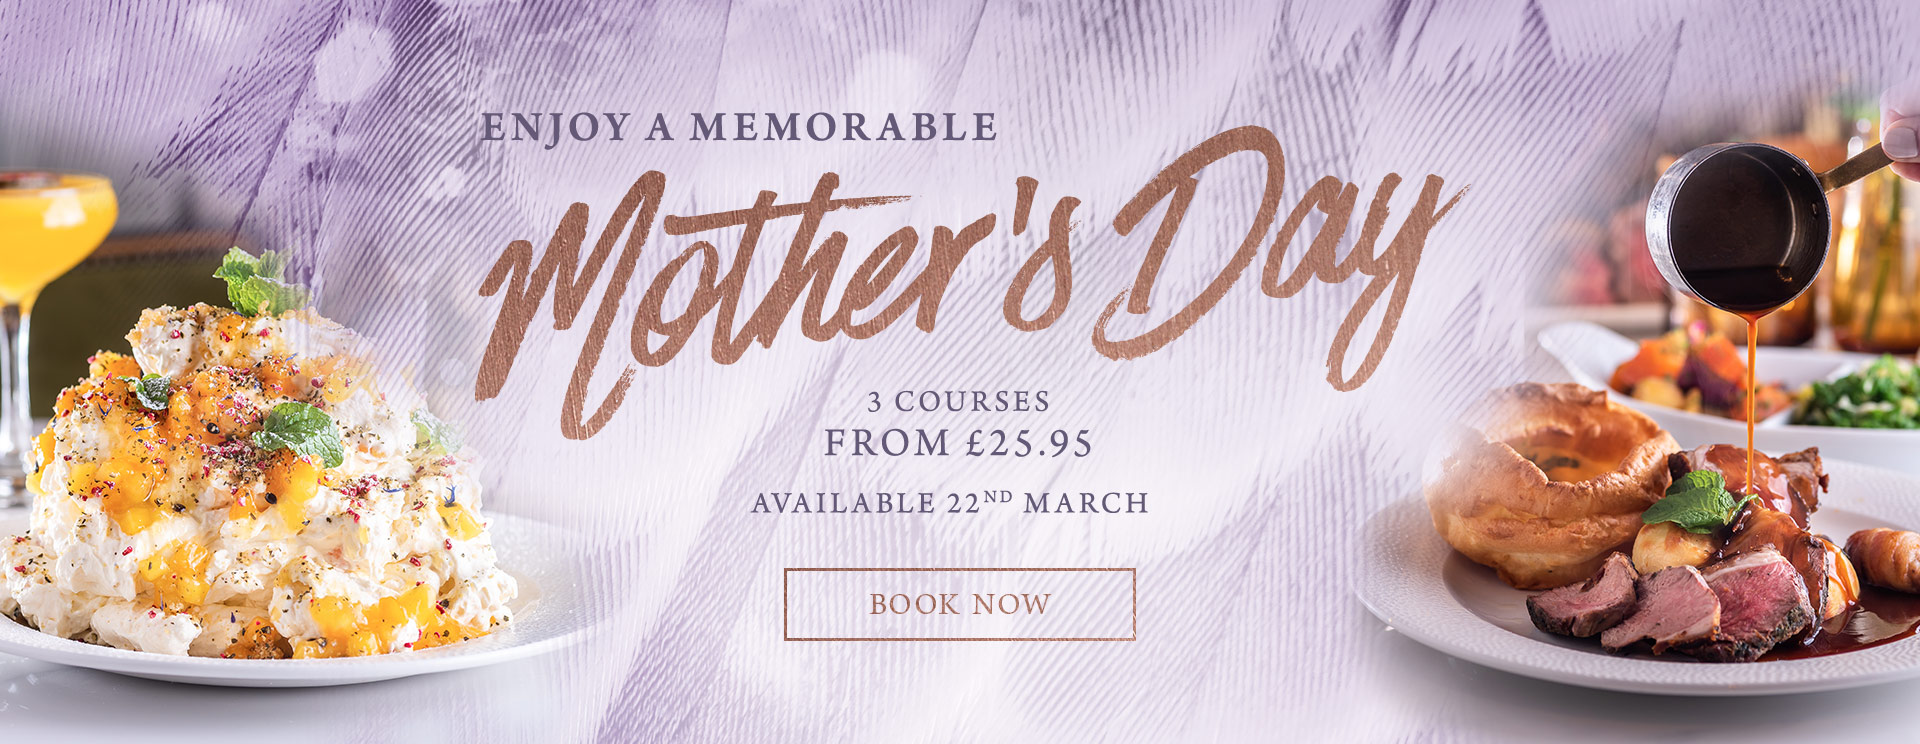 Mother's Day 2019 at The Anchor Inn